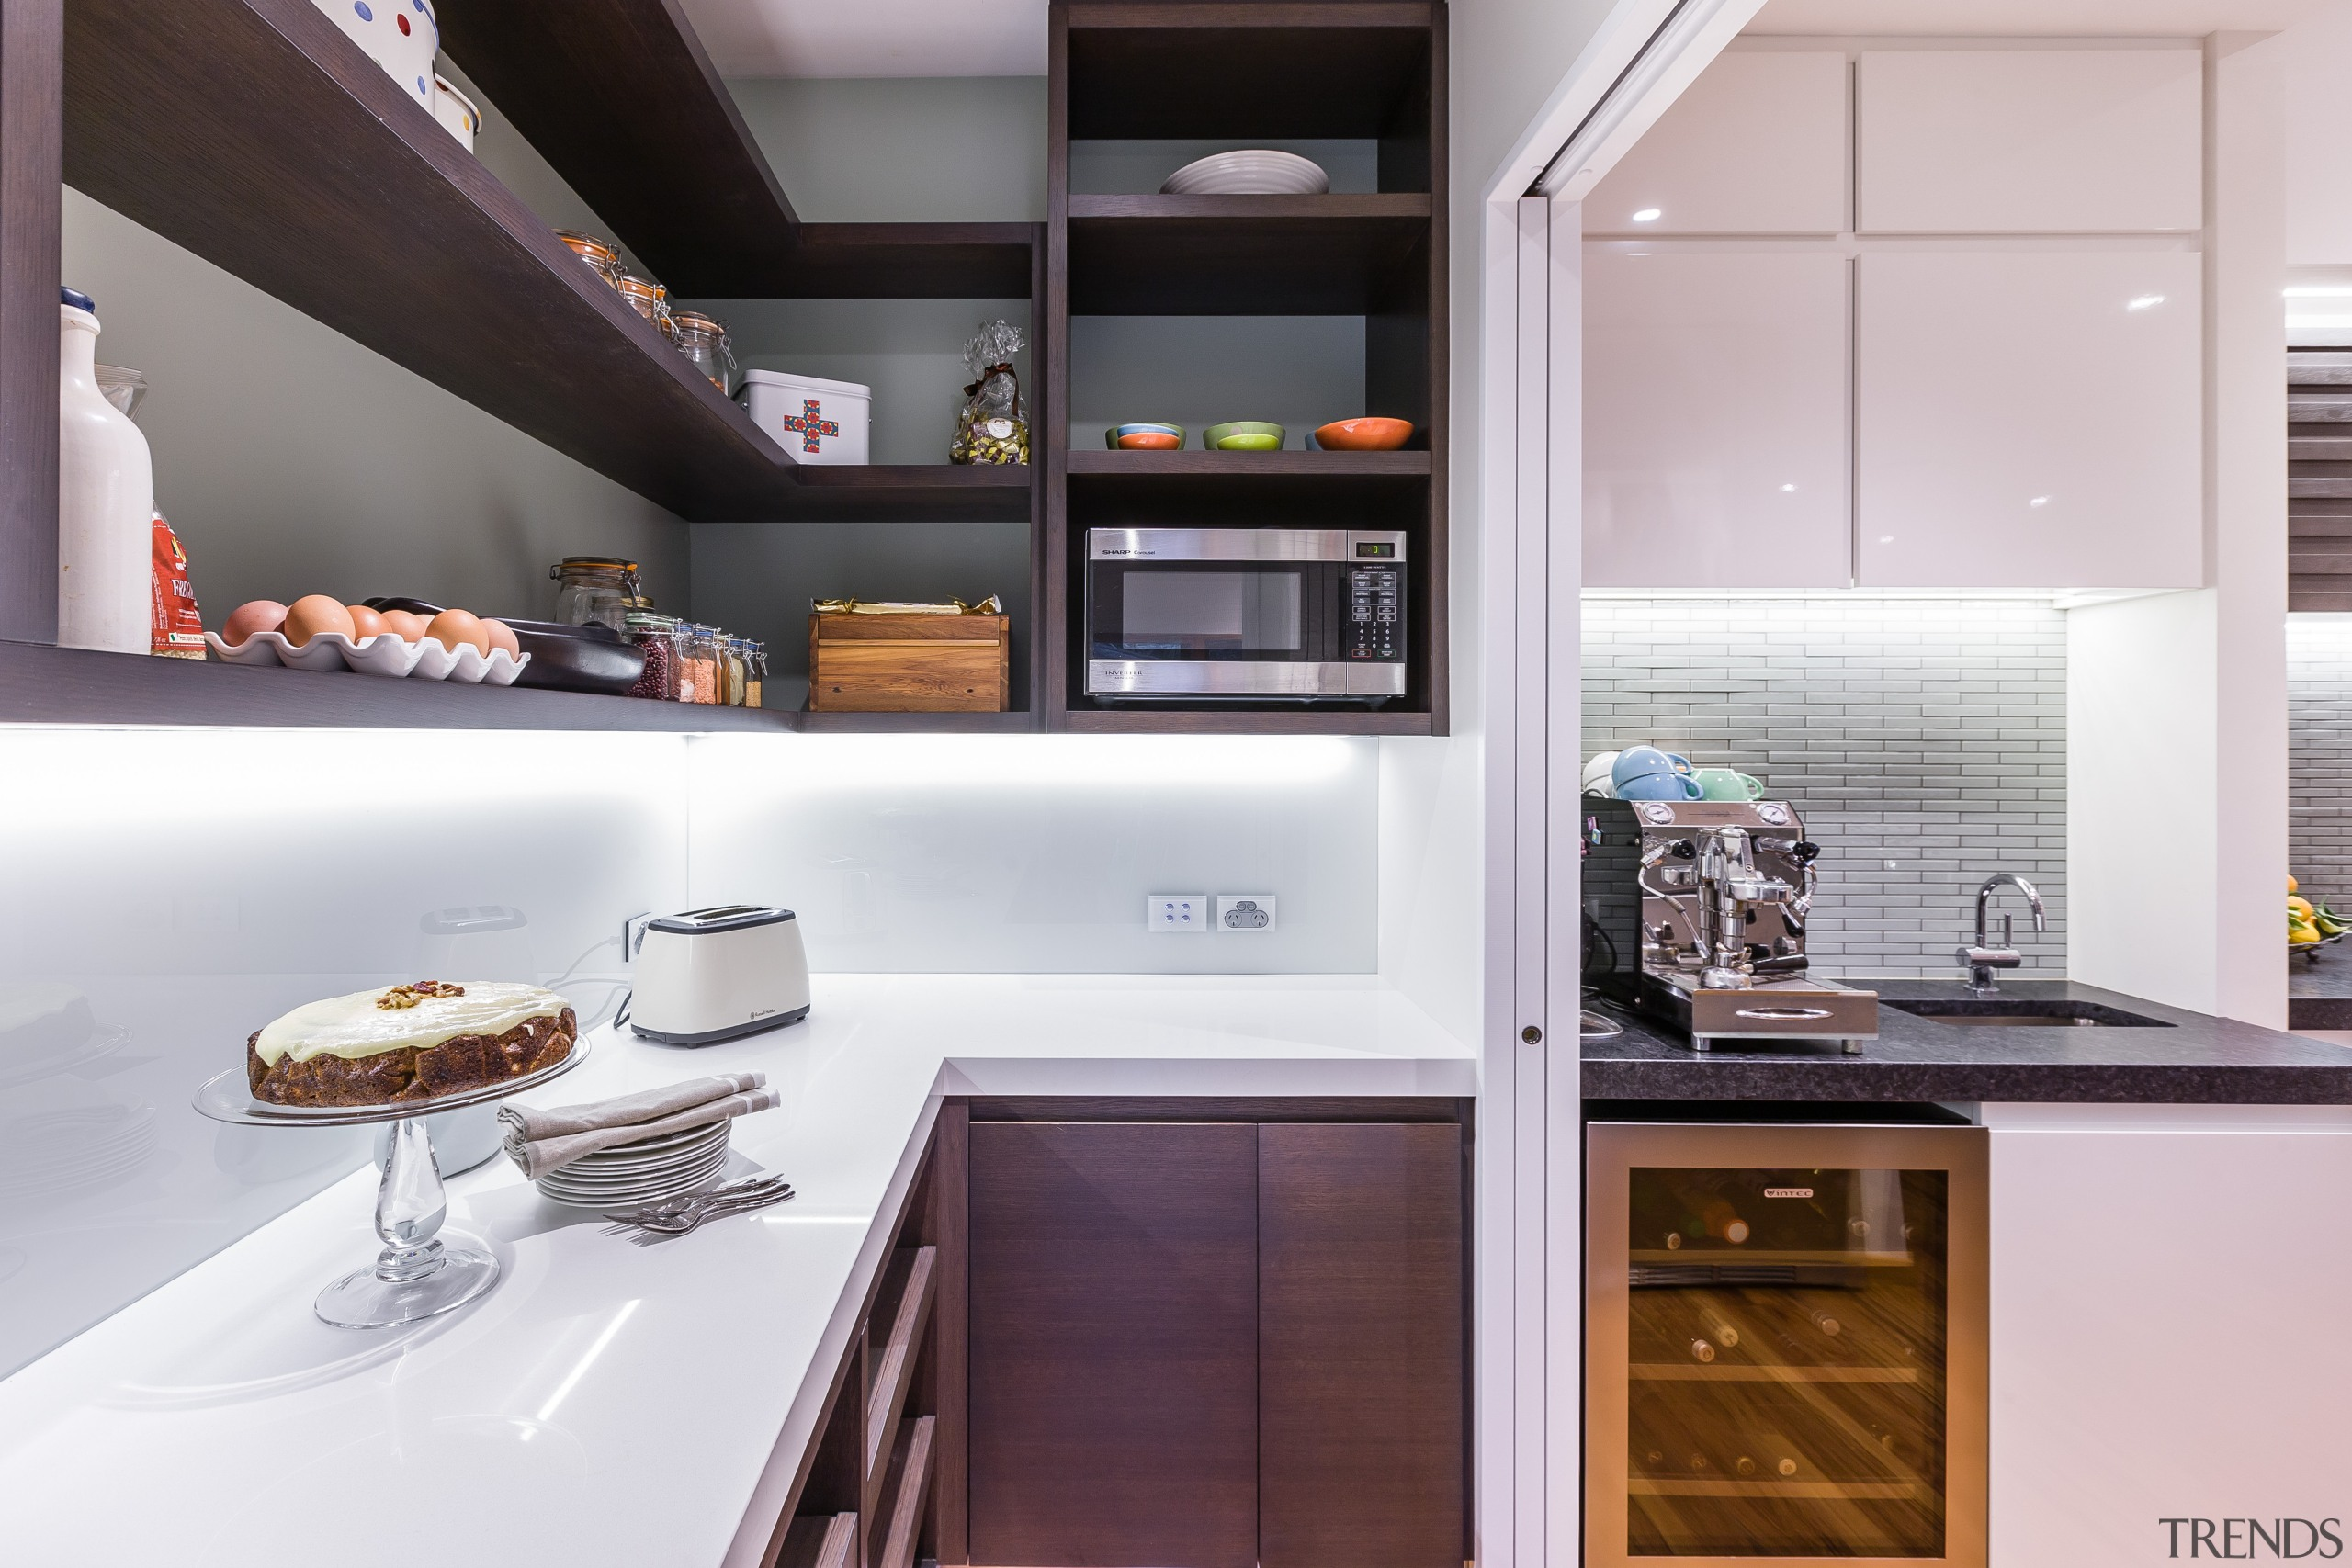 Handle-free cabinetry adds to the minimalist look of countertop, cuisine classique, home appliance, interior design, kitchen, white